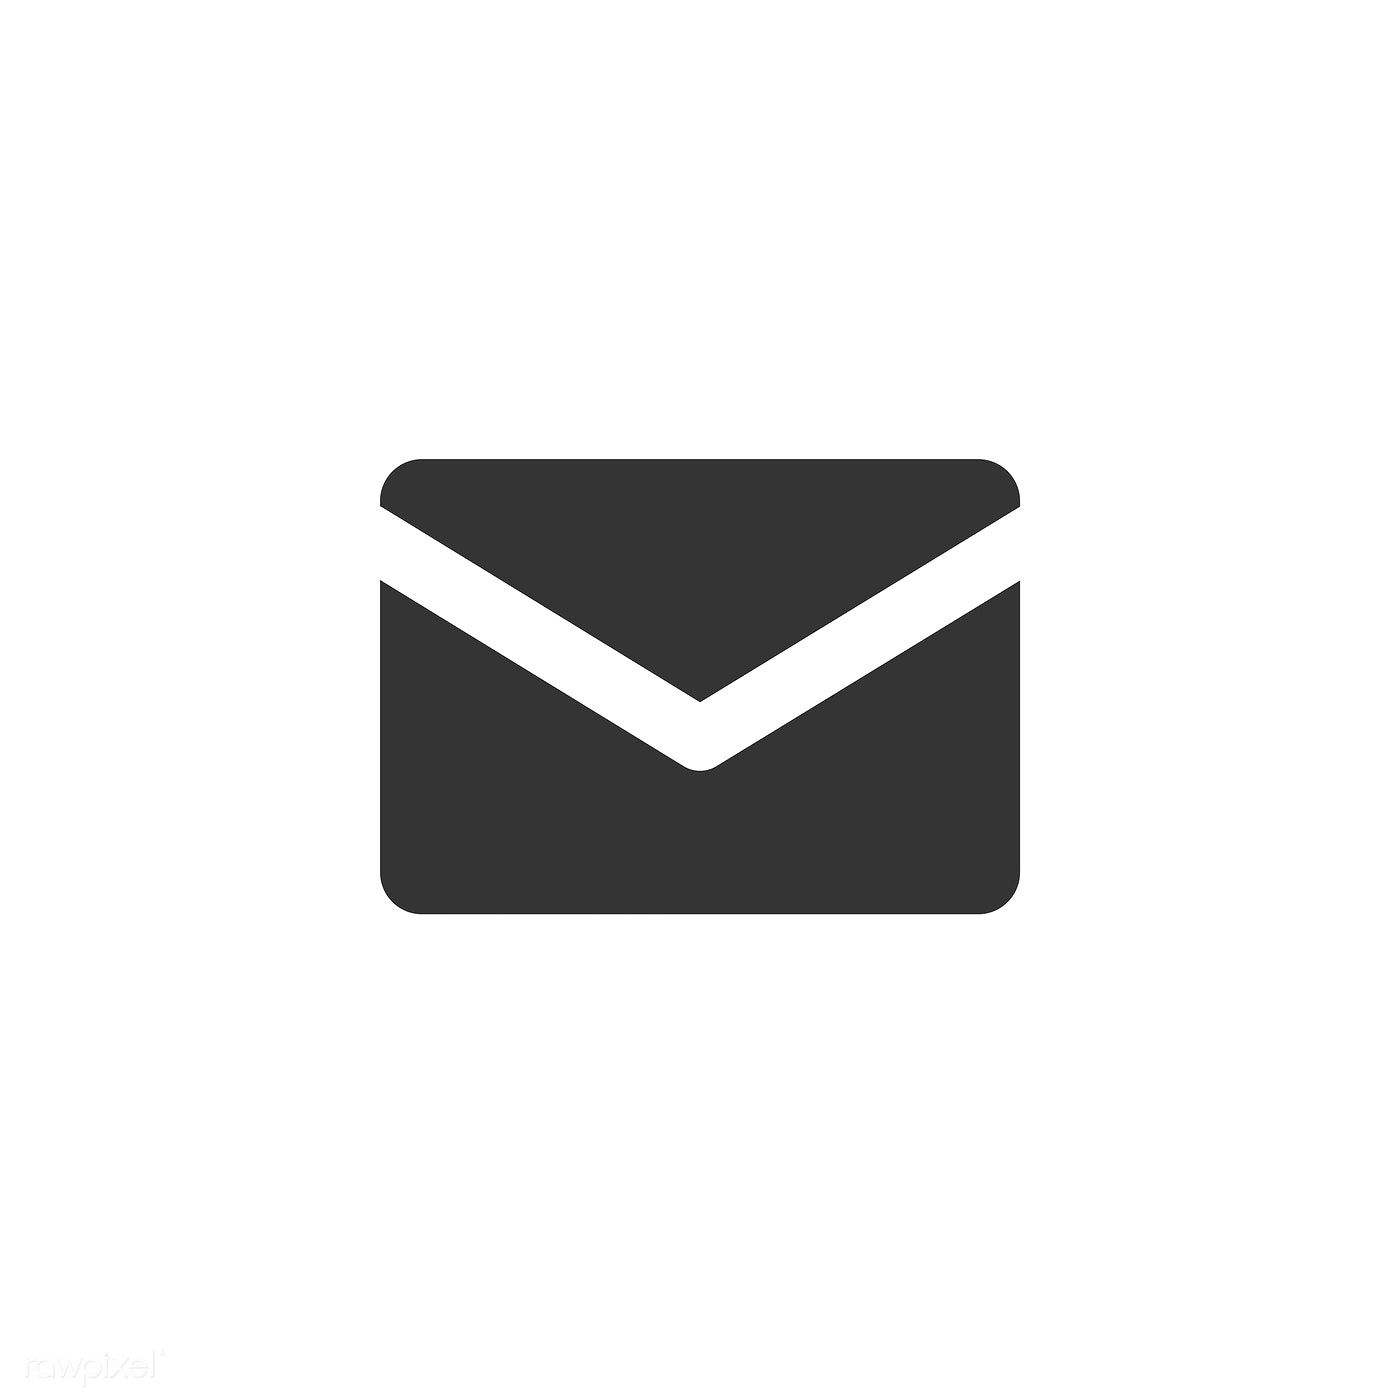 Mail icon vector.